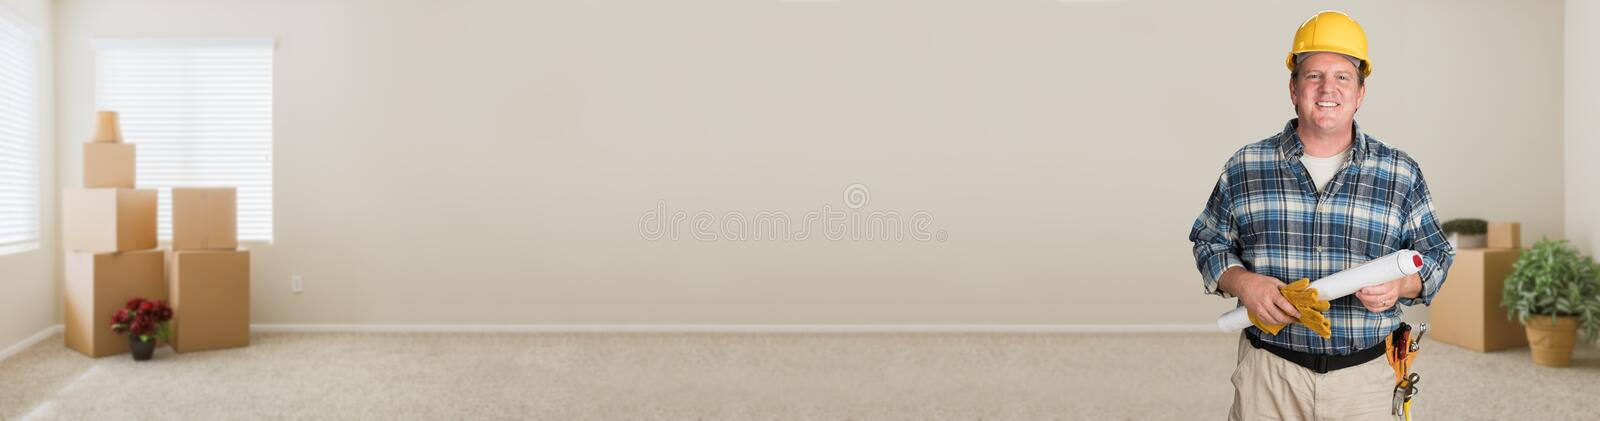 Contractor With Plans and Hard Hat In Empty Room with Moving Boxes royalty free stock photography